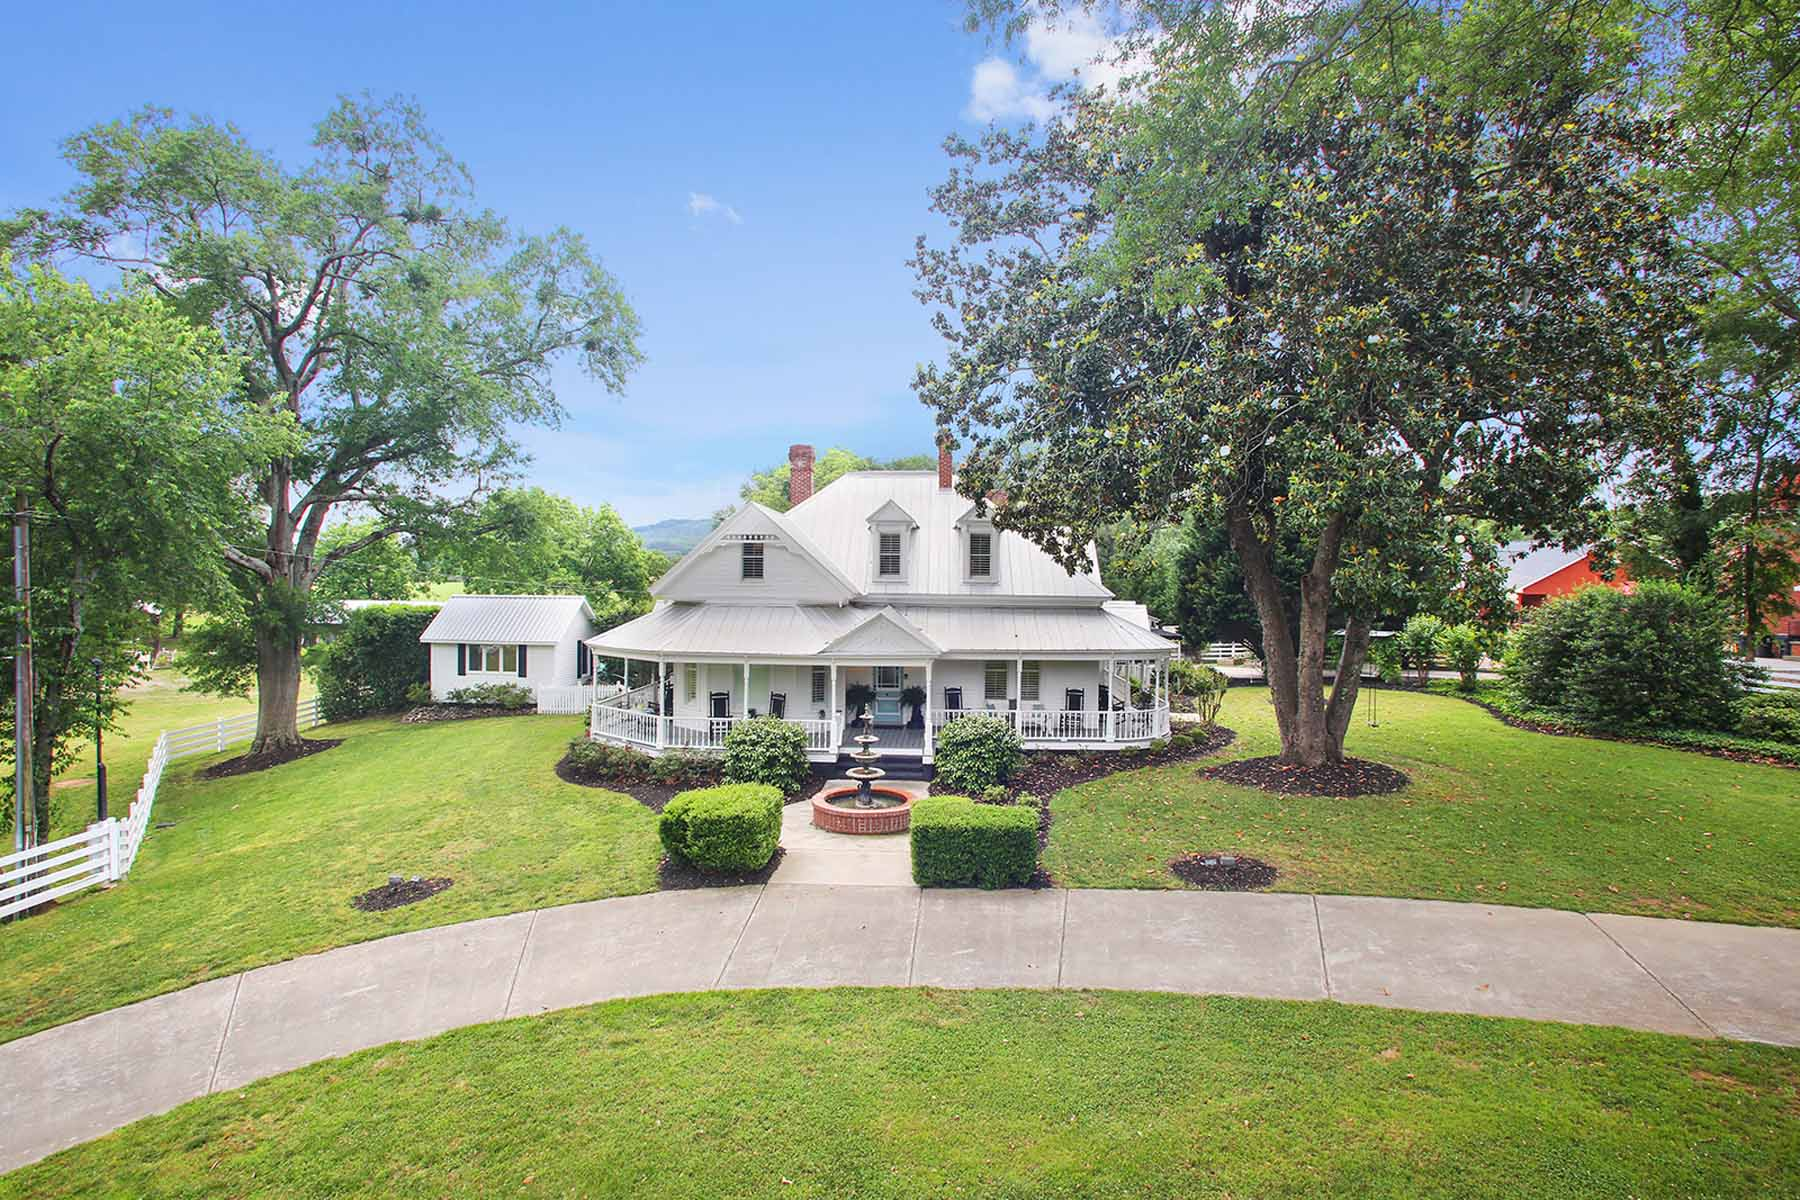 Single Family Home for Active at This Perfect Historic Home Awaits You in Taylorsville! 24 Main Street Taylorsville, Georgia 30178 United States